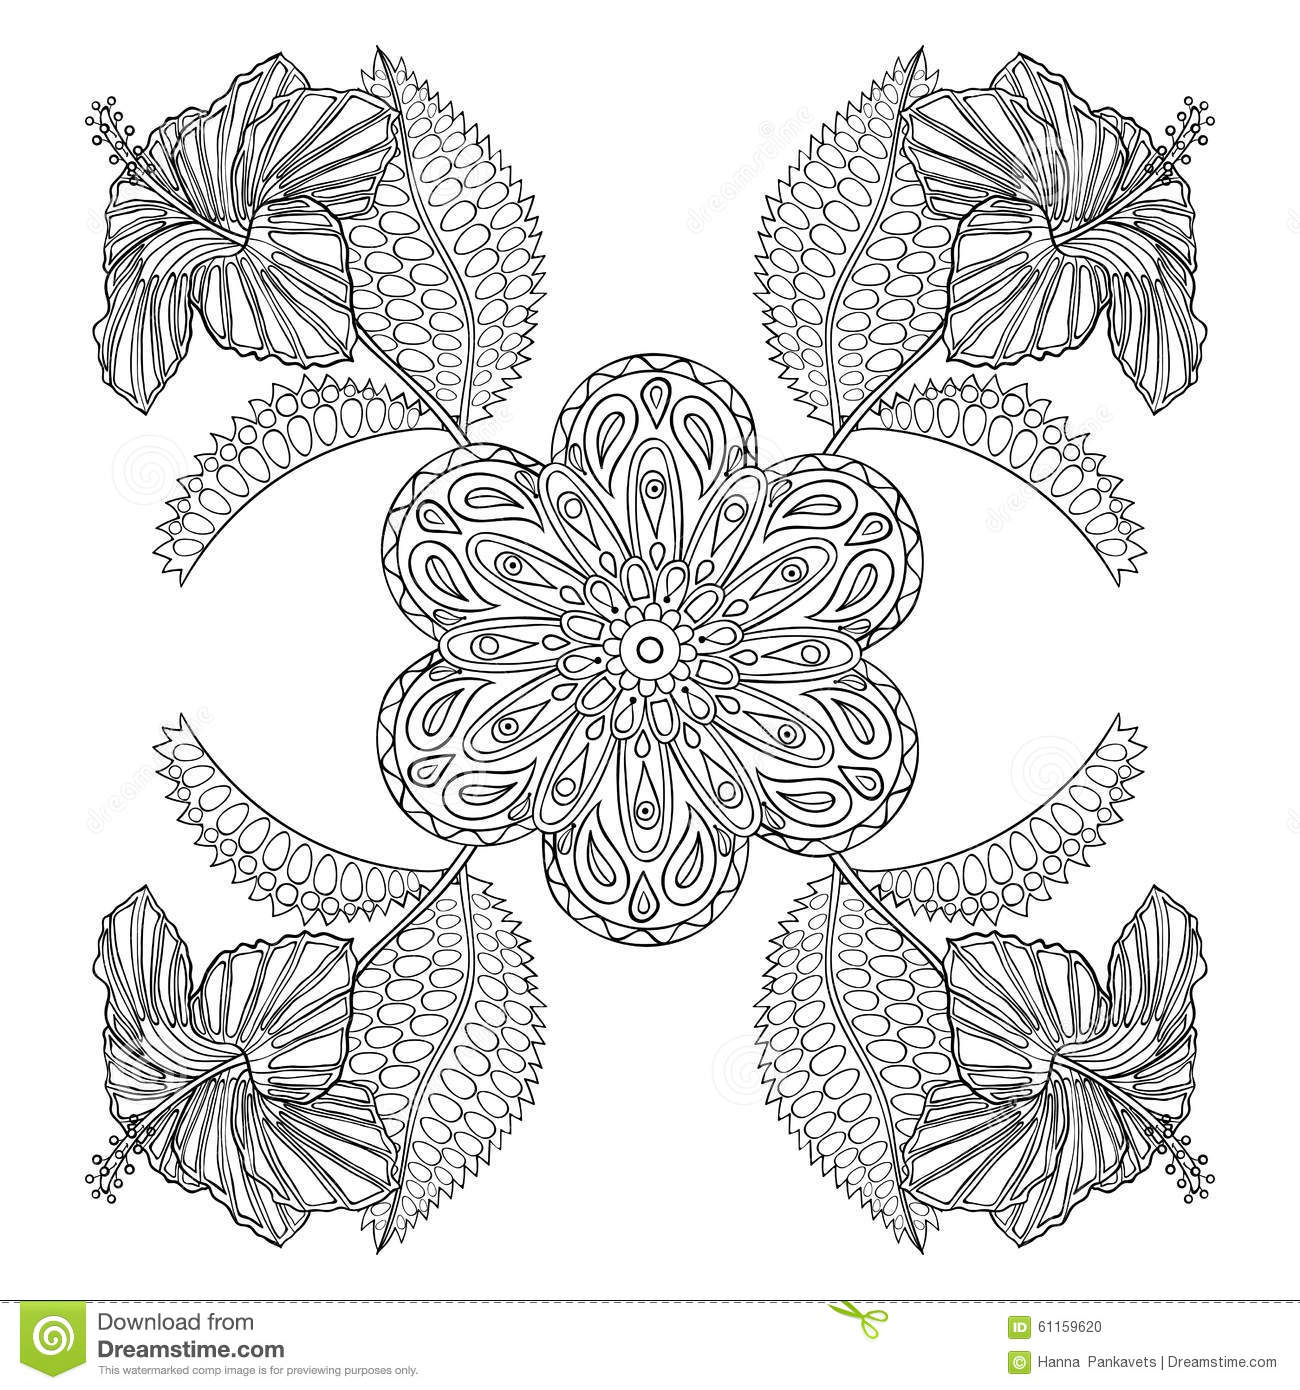 Coloring Page With Exotic Flowers Zentangle Illustartion